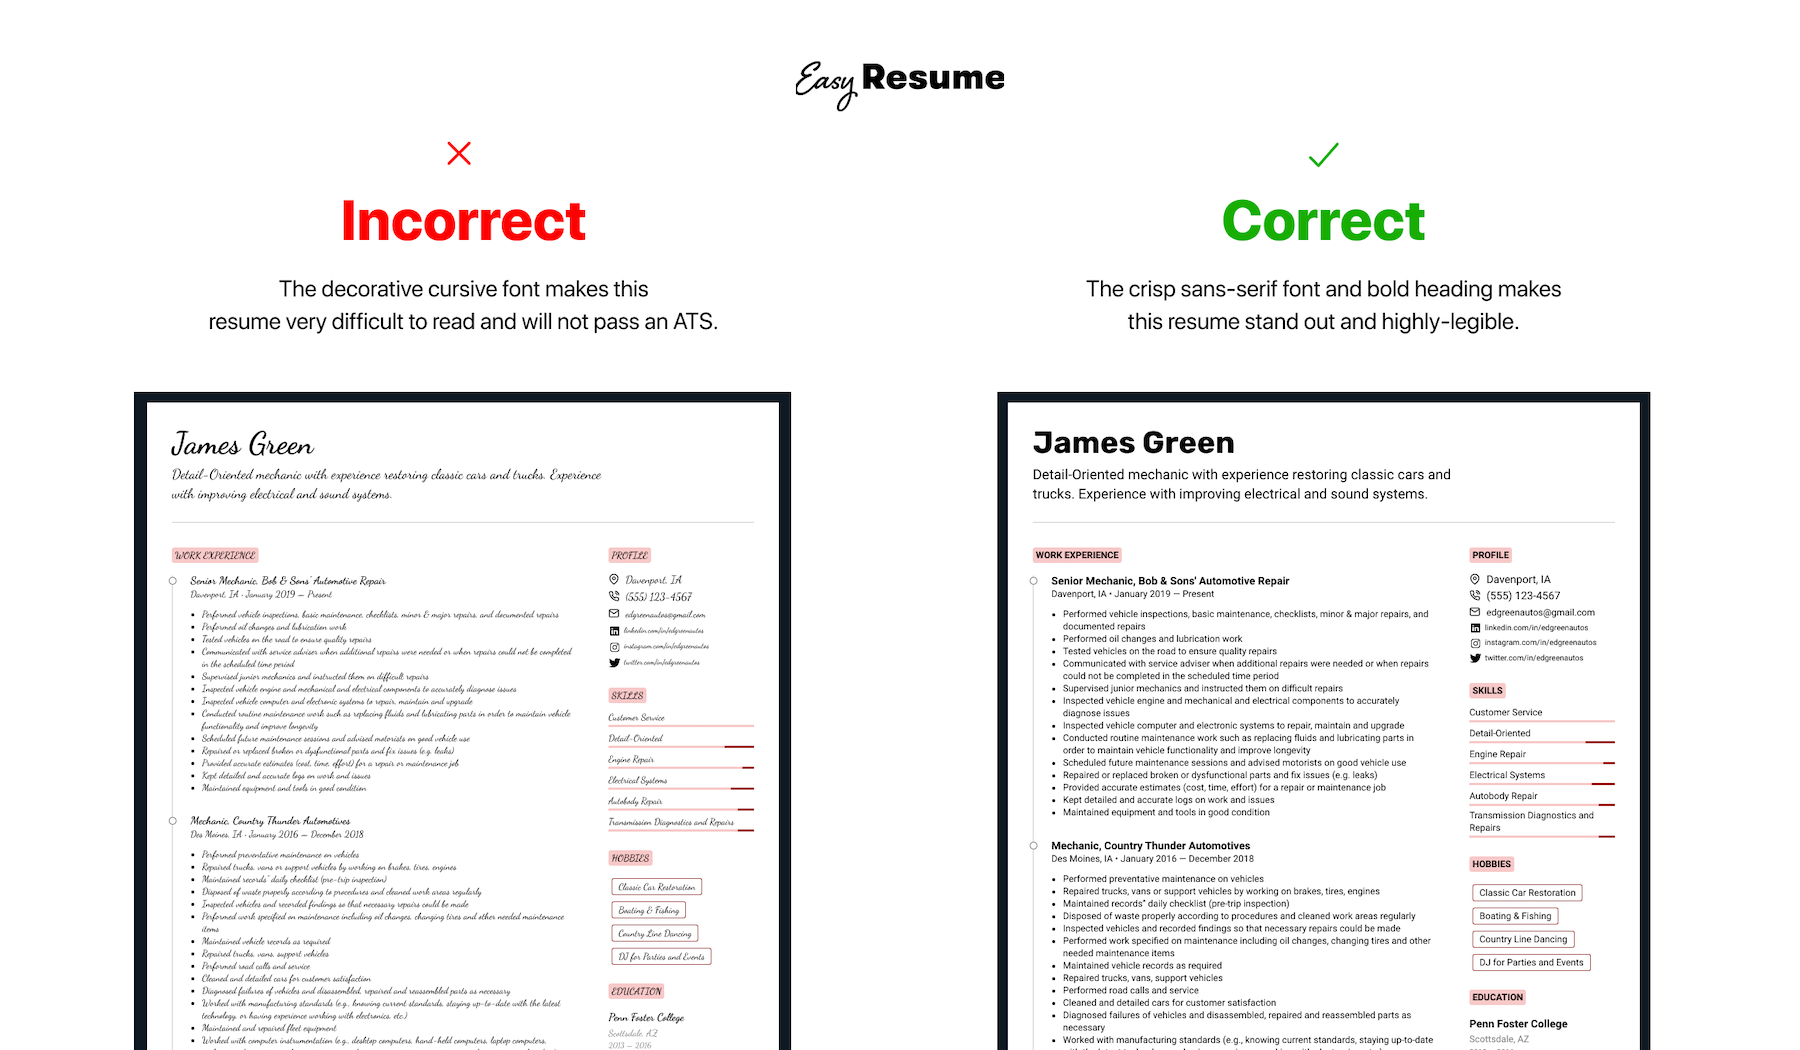 Incorrect and Correct Example of Using Resume Fonts